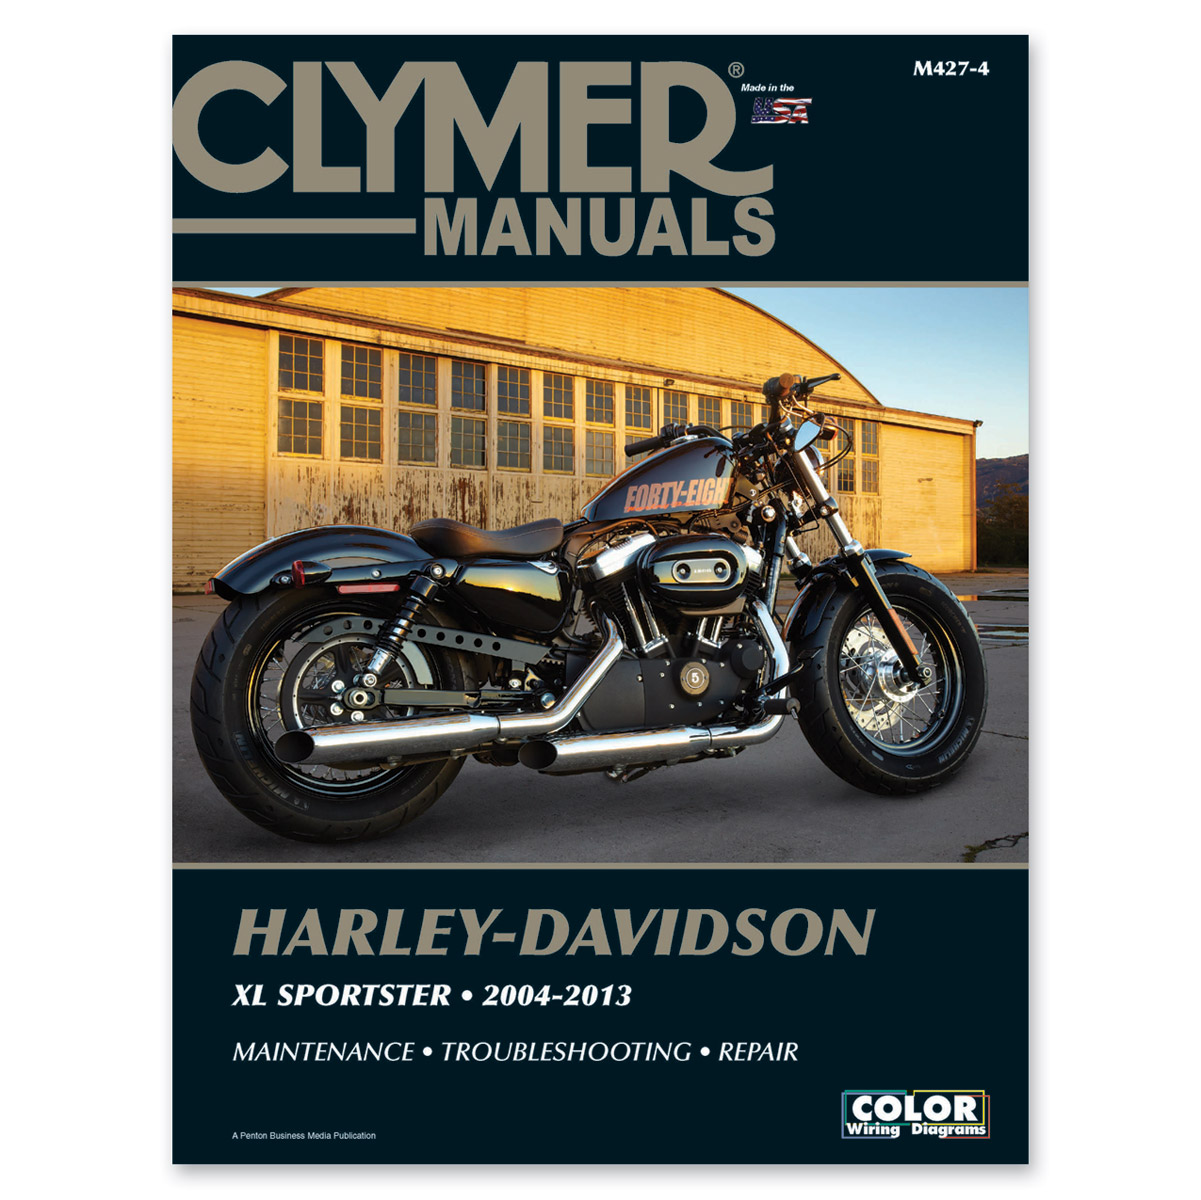 clymer sportster repair manual 446 613 j p cycles rh jpcycles com Harley 1200 Sportster 2012 harley sportster 1200 owners manual